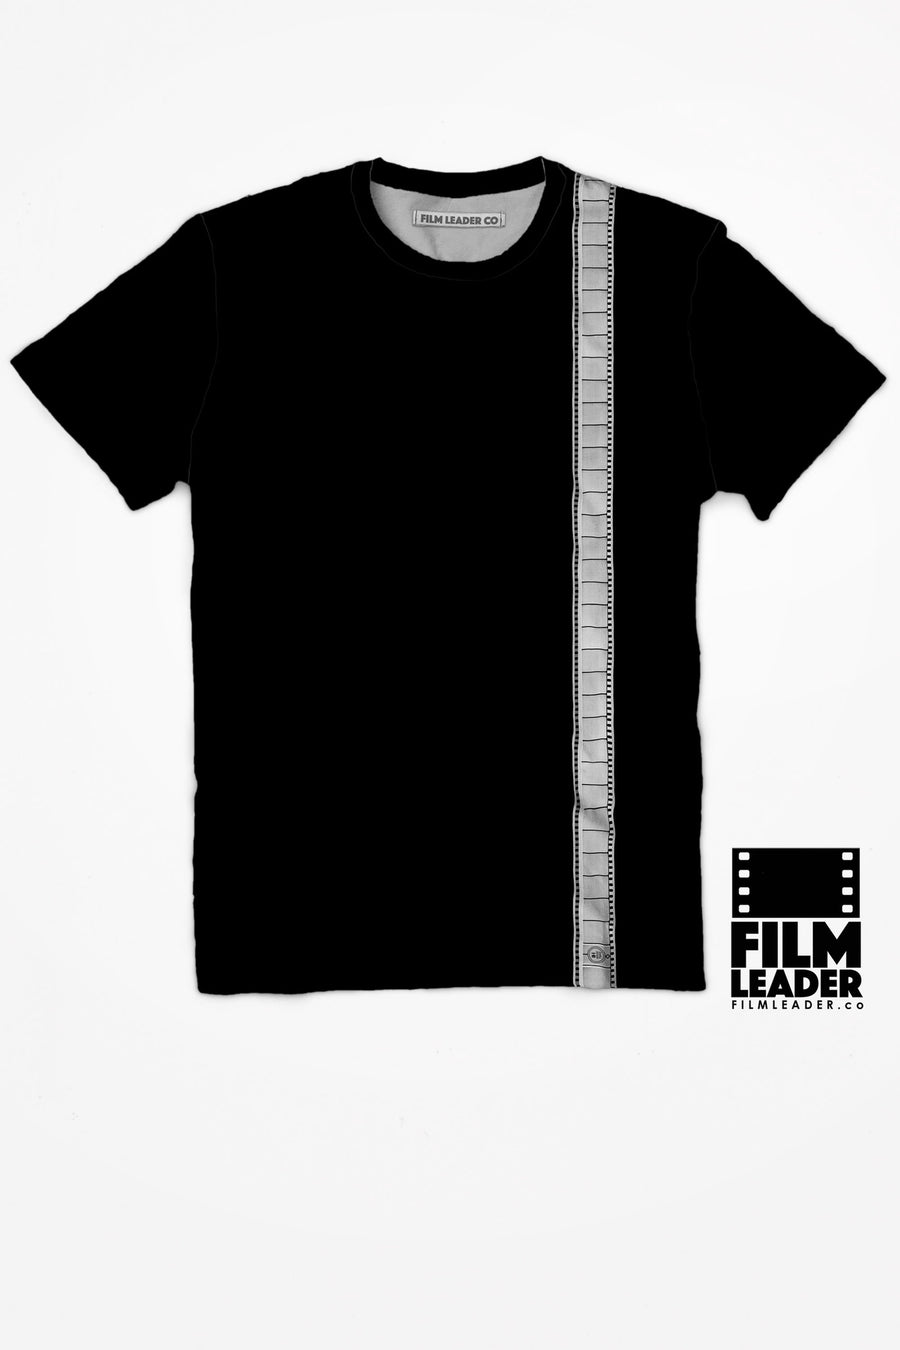 Crew Neck T Shirt with 35mm Single Strip #2 (Vertical Negative)